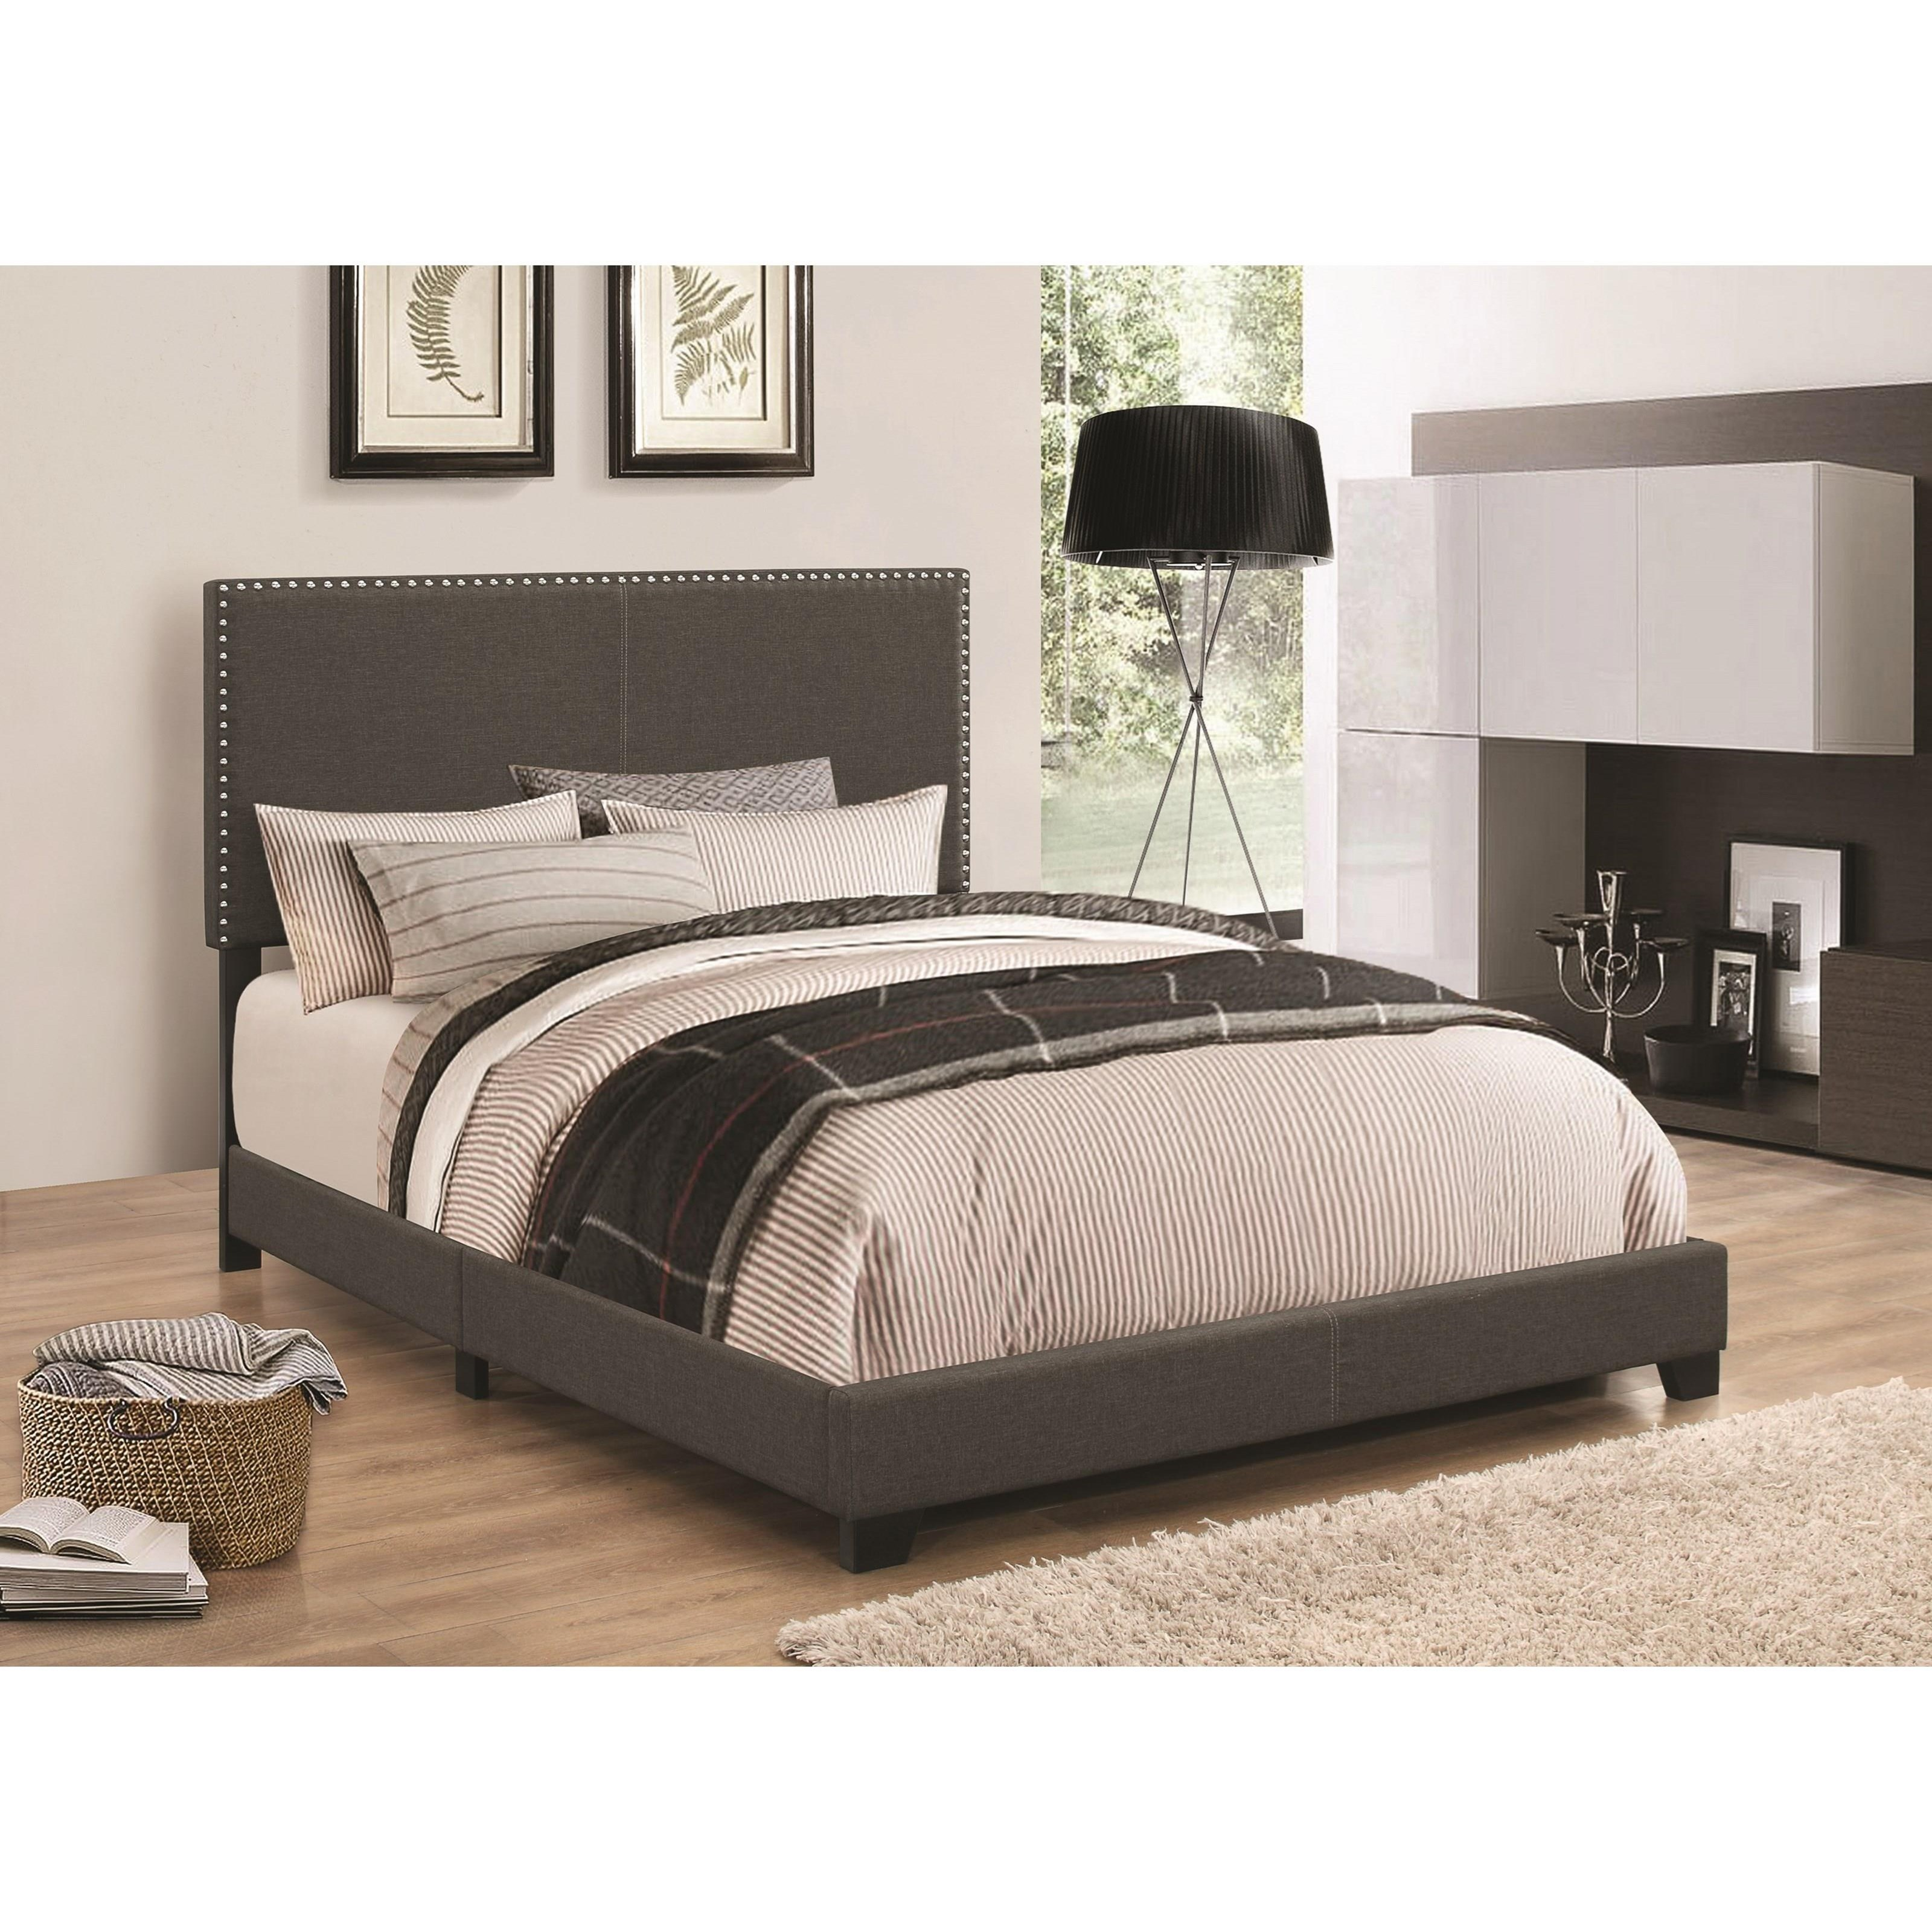 coaster upholstered beds full bed  item number f. coaster upholstered beds f upholstered full bed with